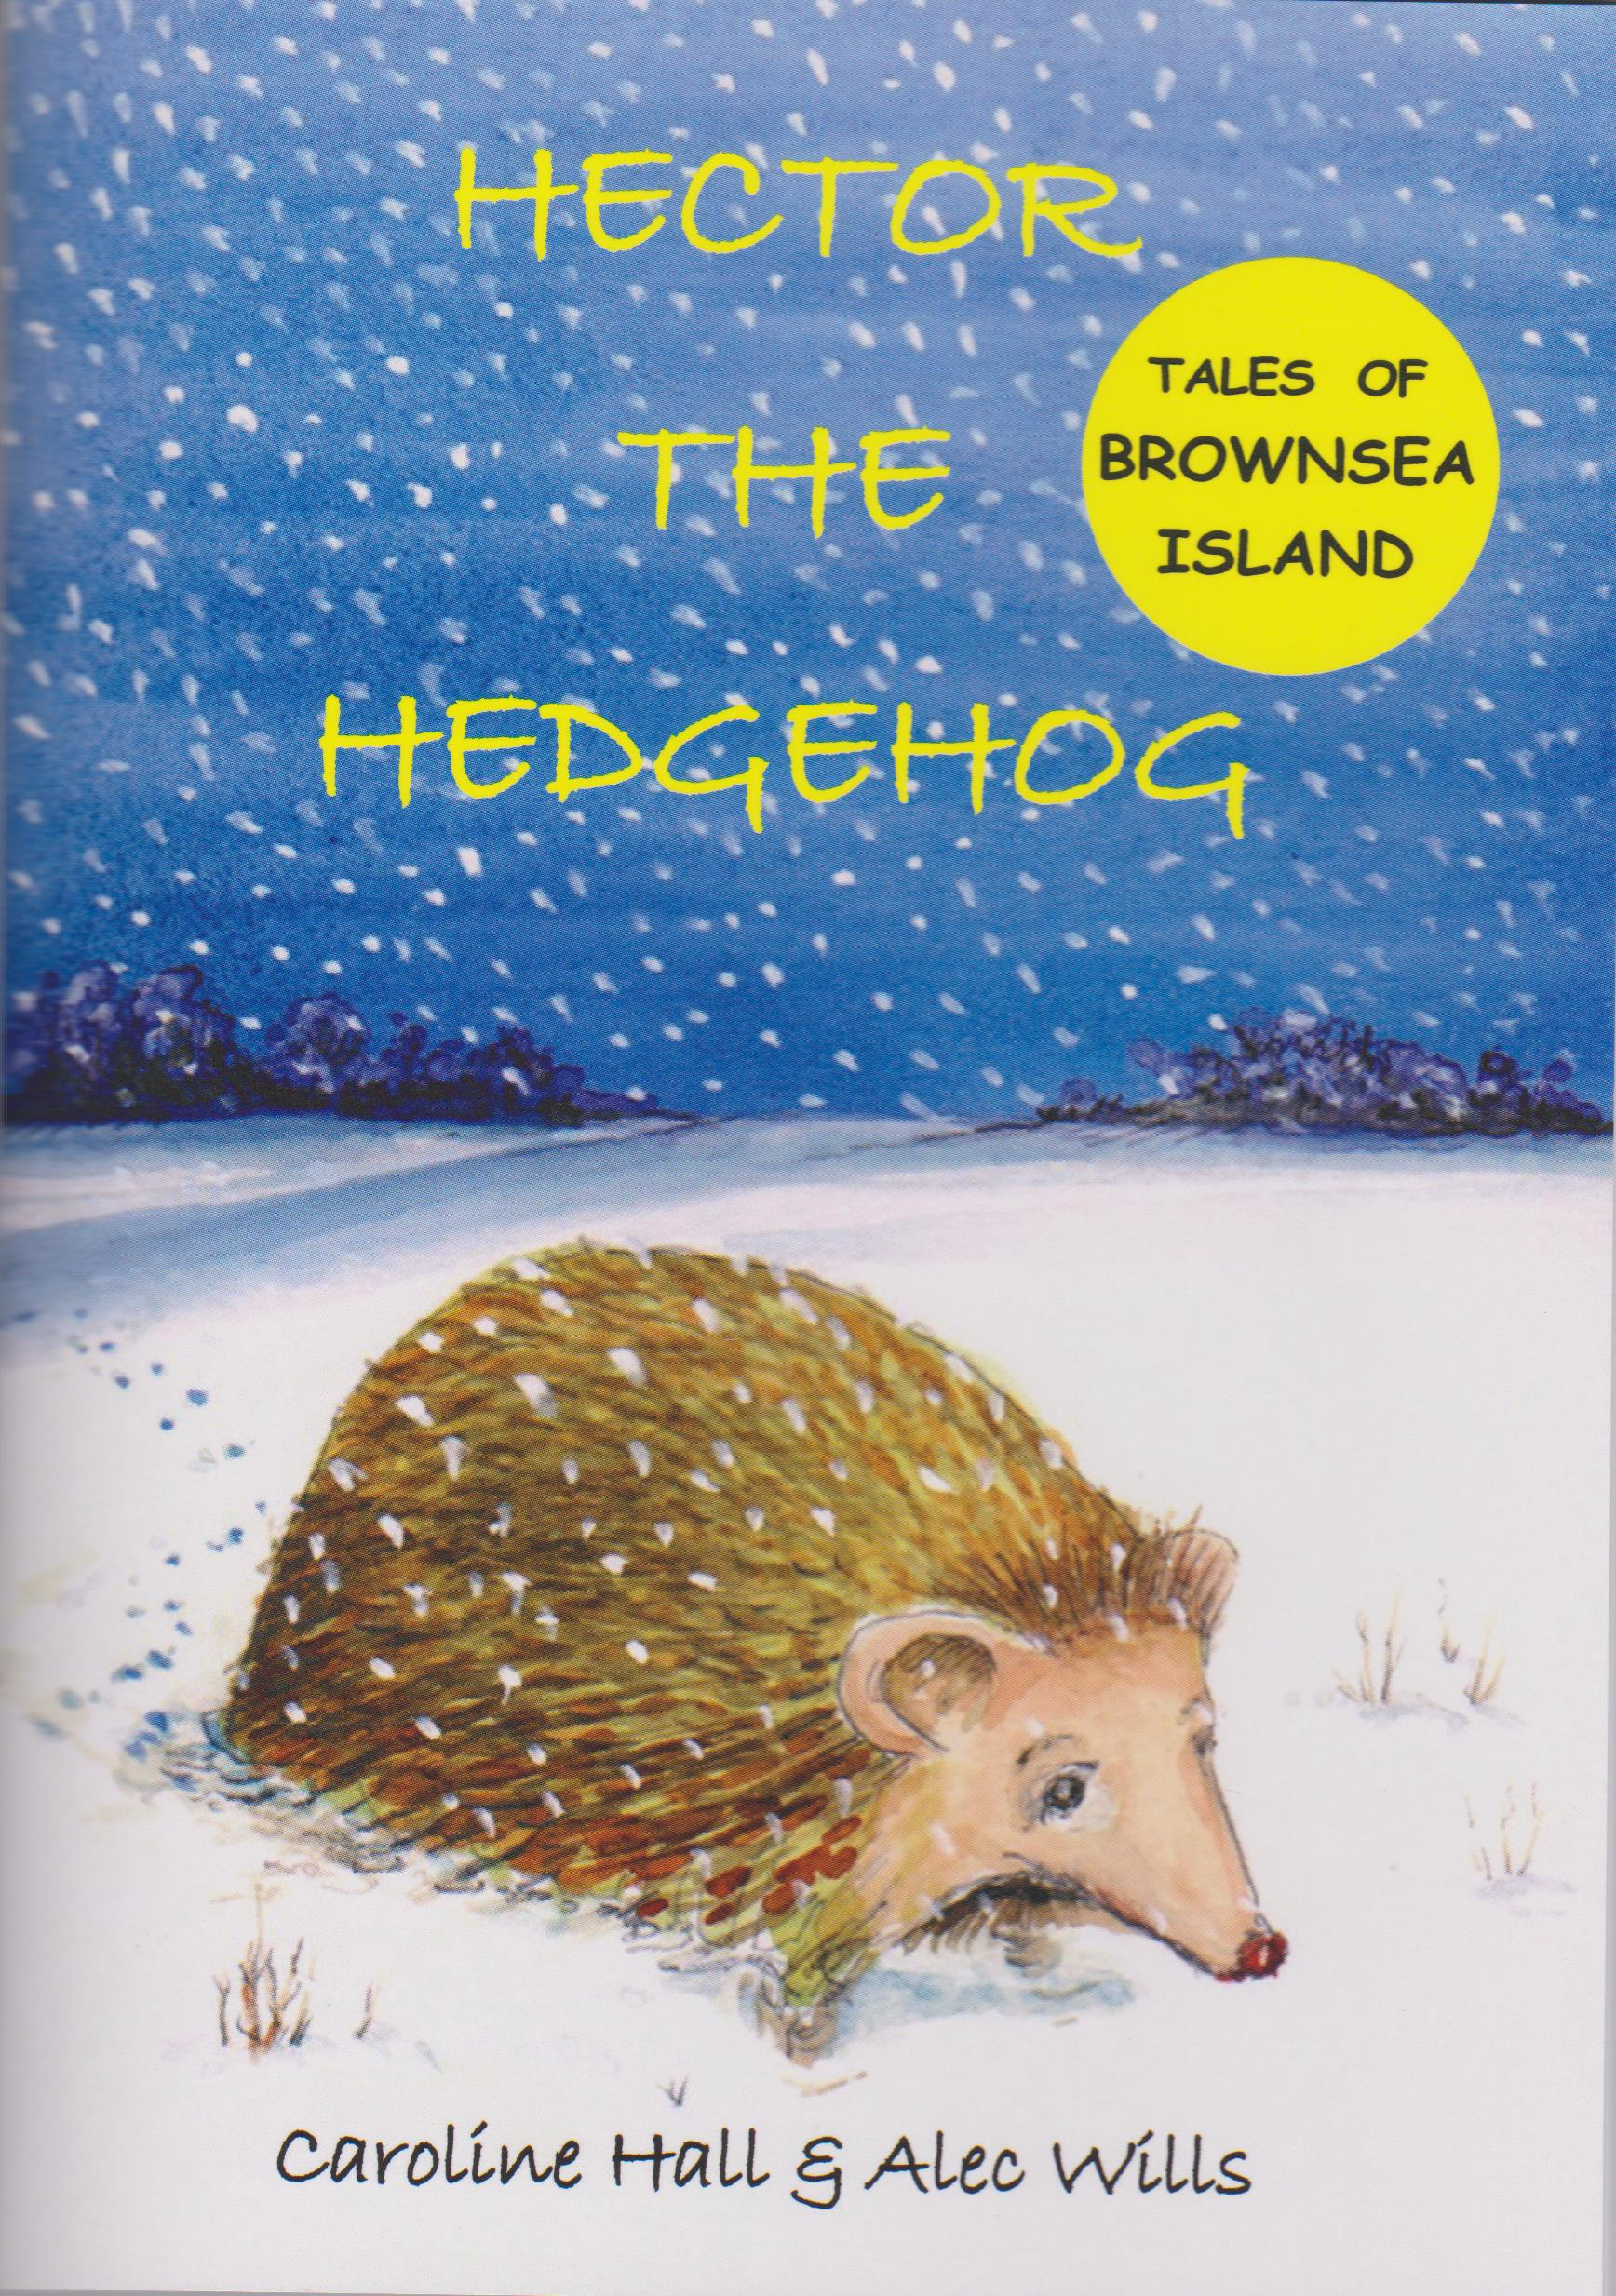 hector the hedgehog book cover